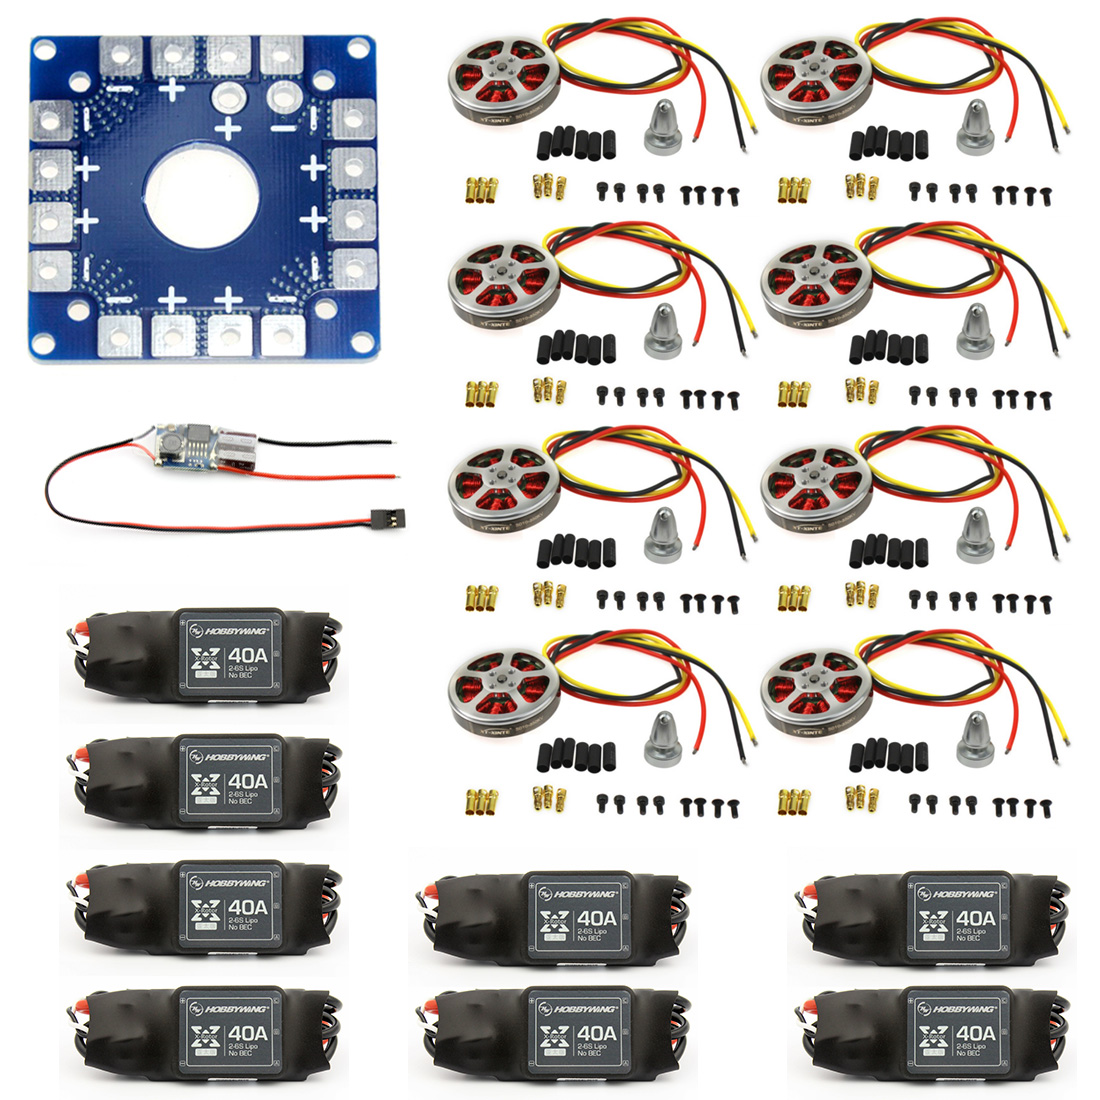 8 Sets 350KV Brushless Disk Motor High Thrust W/ Mount + xt-xinte 40A ESC for 3-6s Octacopter Multi Rotor Accessory F05423-B8 Sets 350KV Brushless Disk Motor High Thrust W/ Mount + xt-xinte 40A ESC for 3-6s Octacopter Multi Rotor Accessory F05423-B